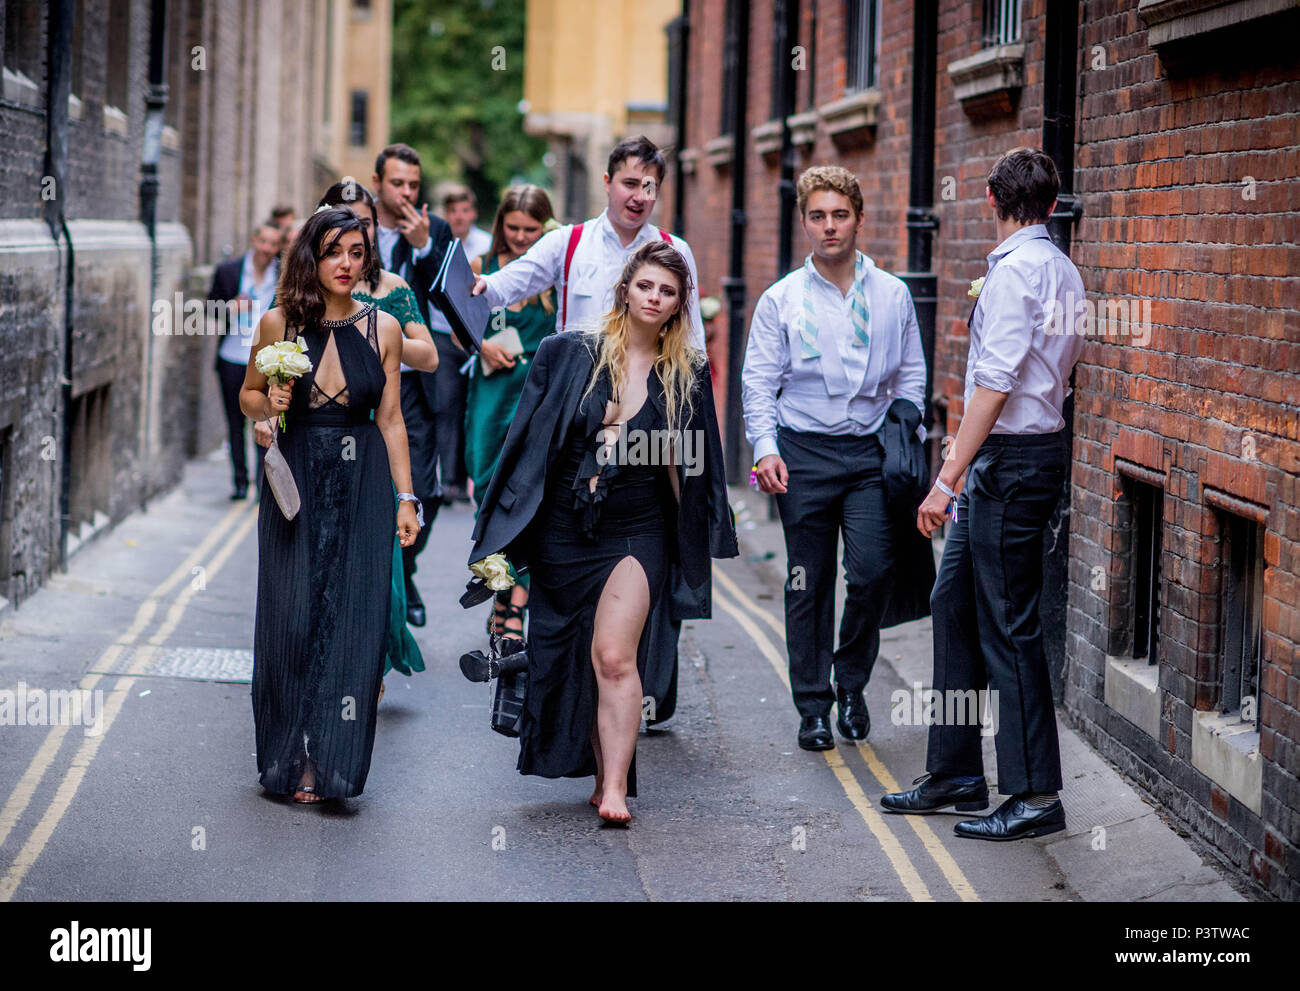 University of Cambridge students undressed for a charity calendar 27